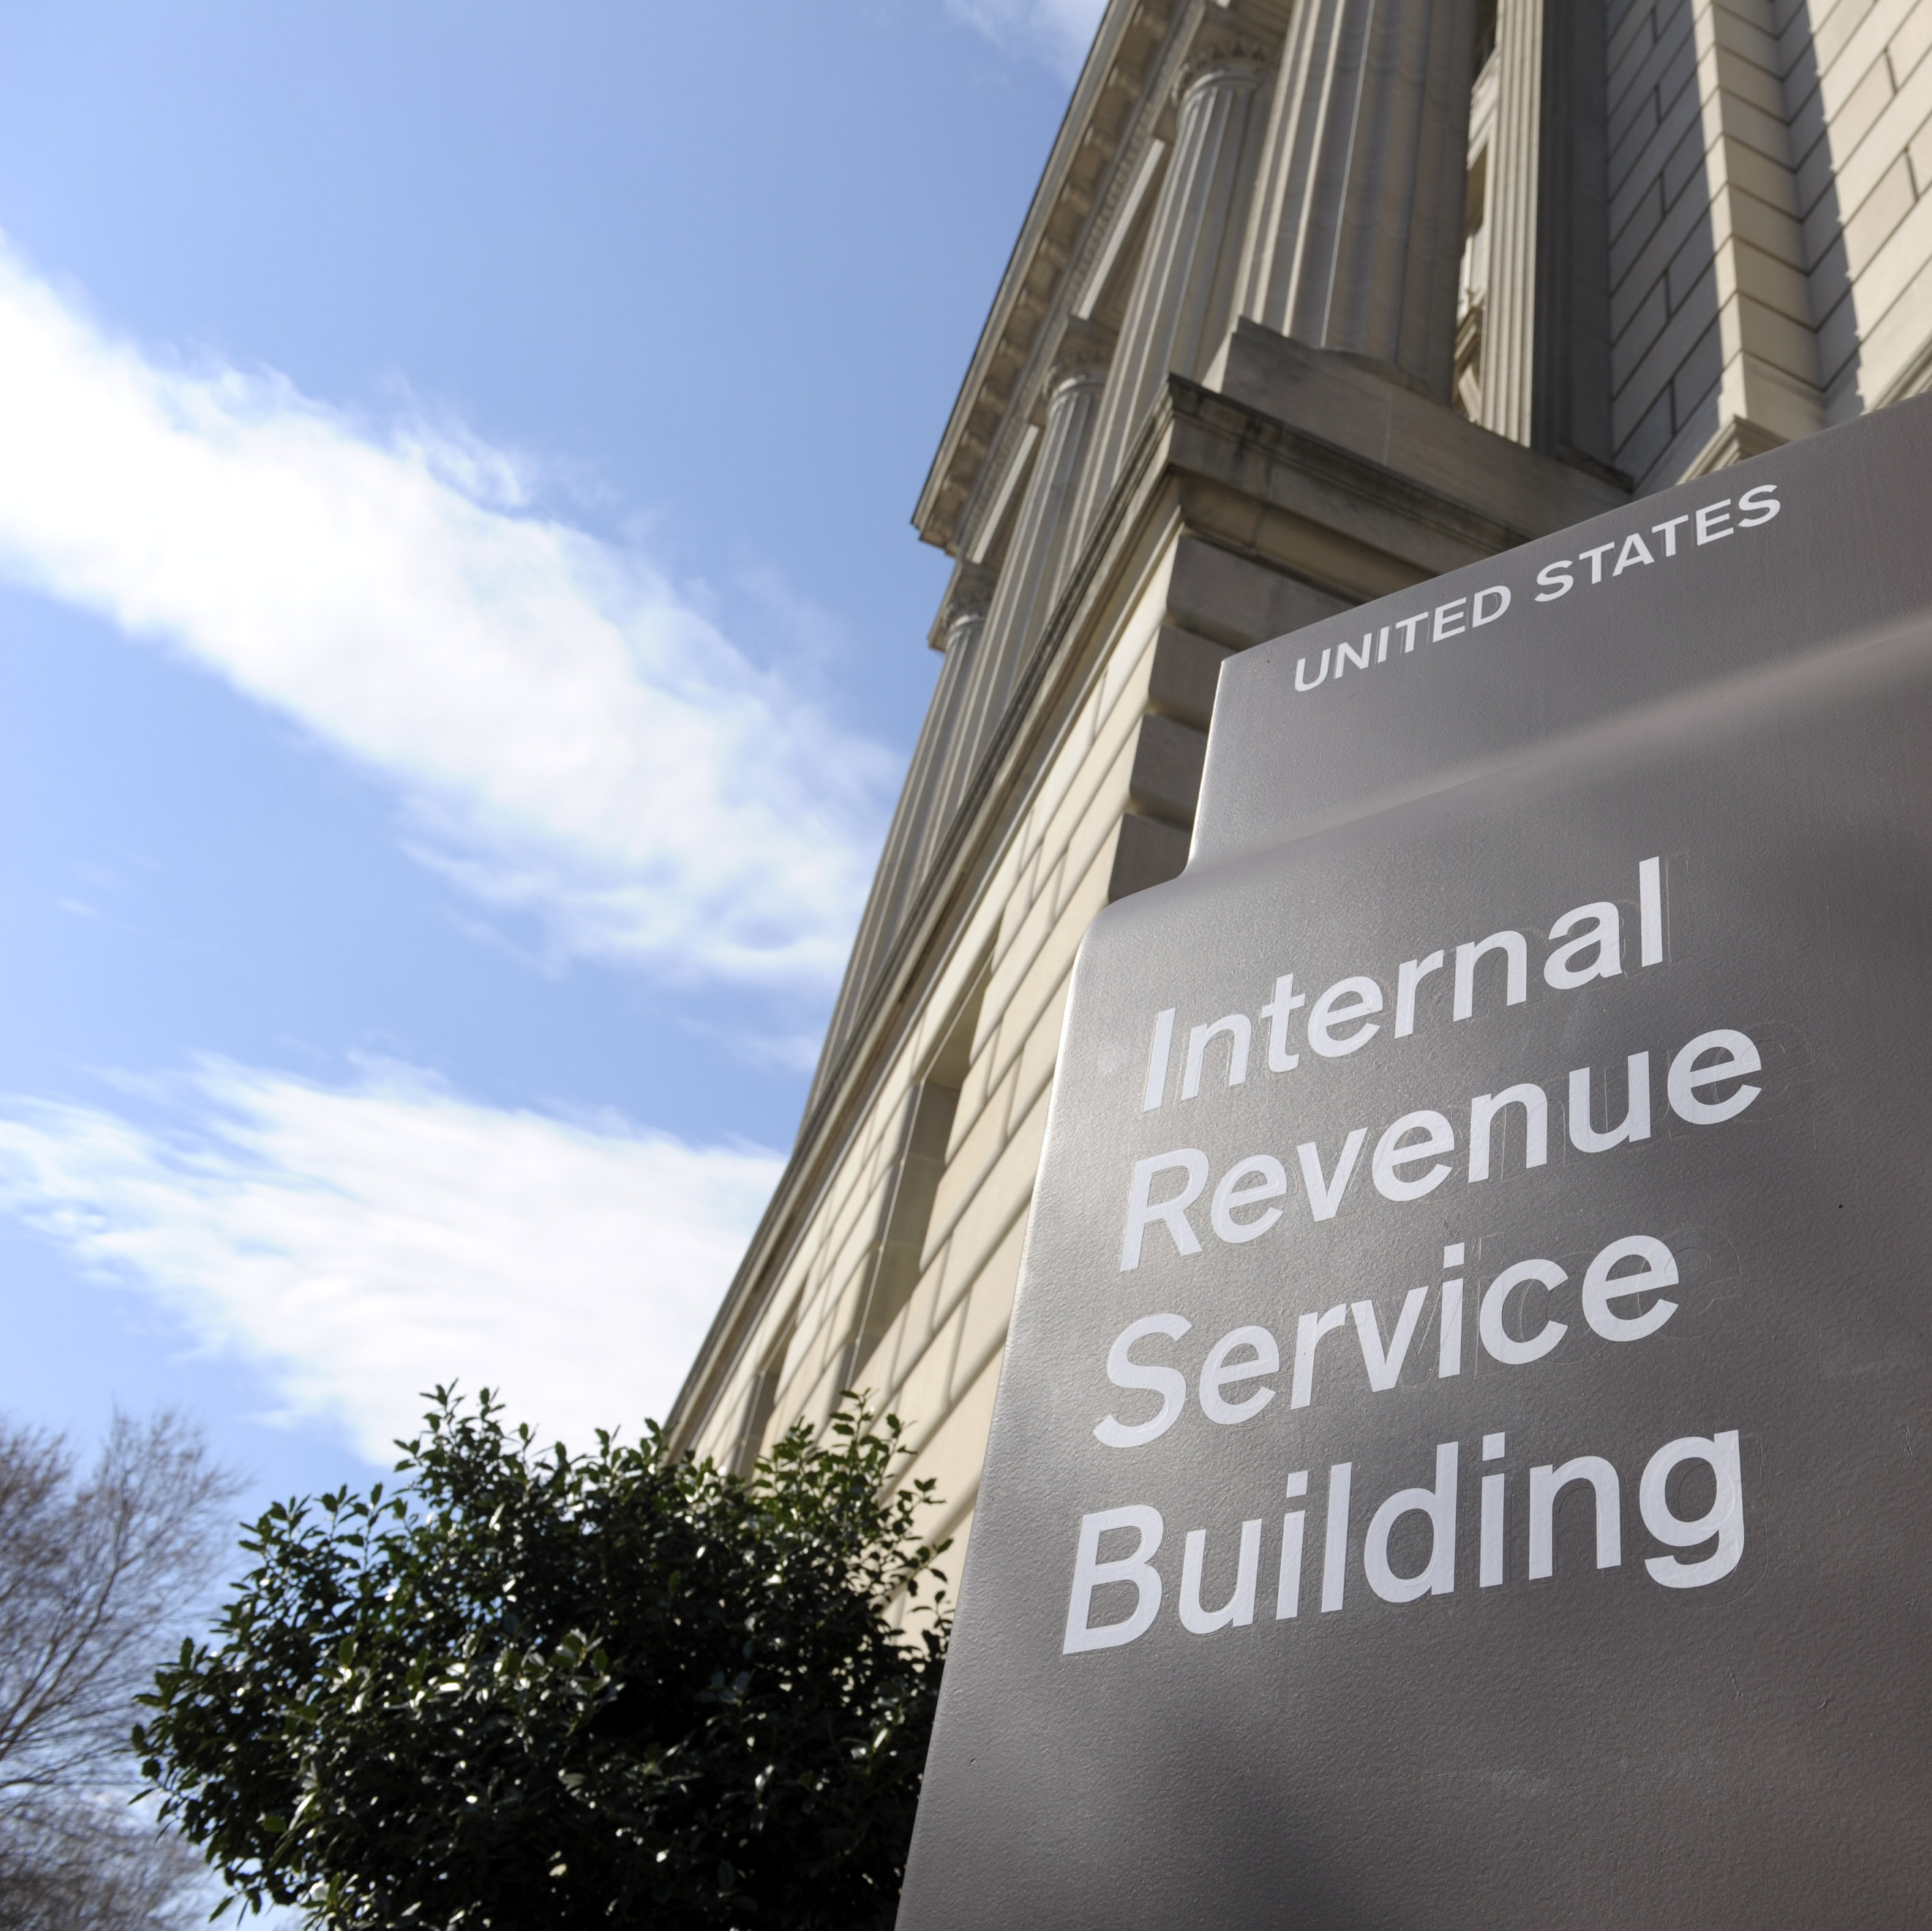 The Internal Revenue Service is accused of singling out conservative groups applying for tax-exempt status for extra scrutiny.